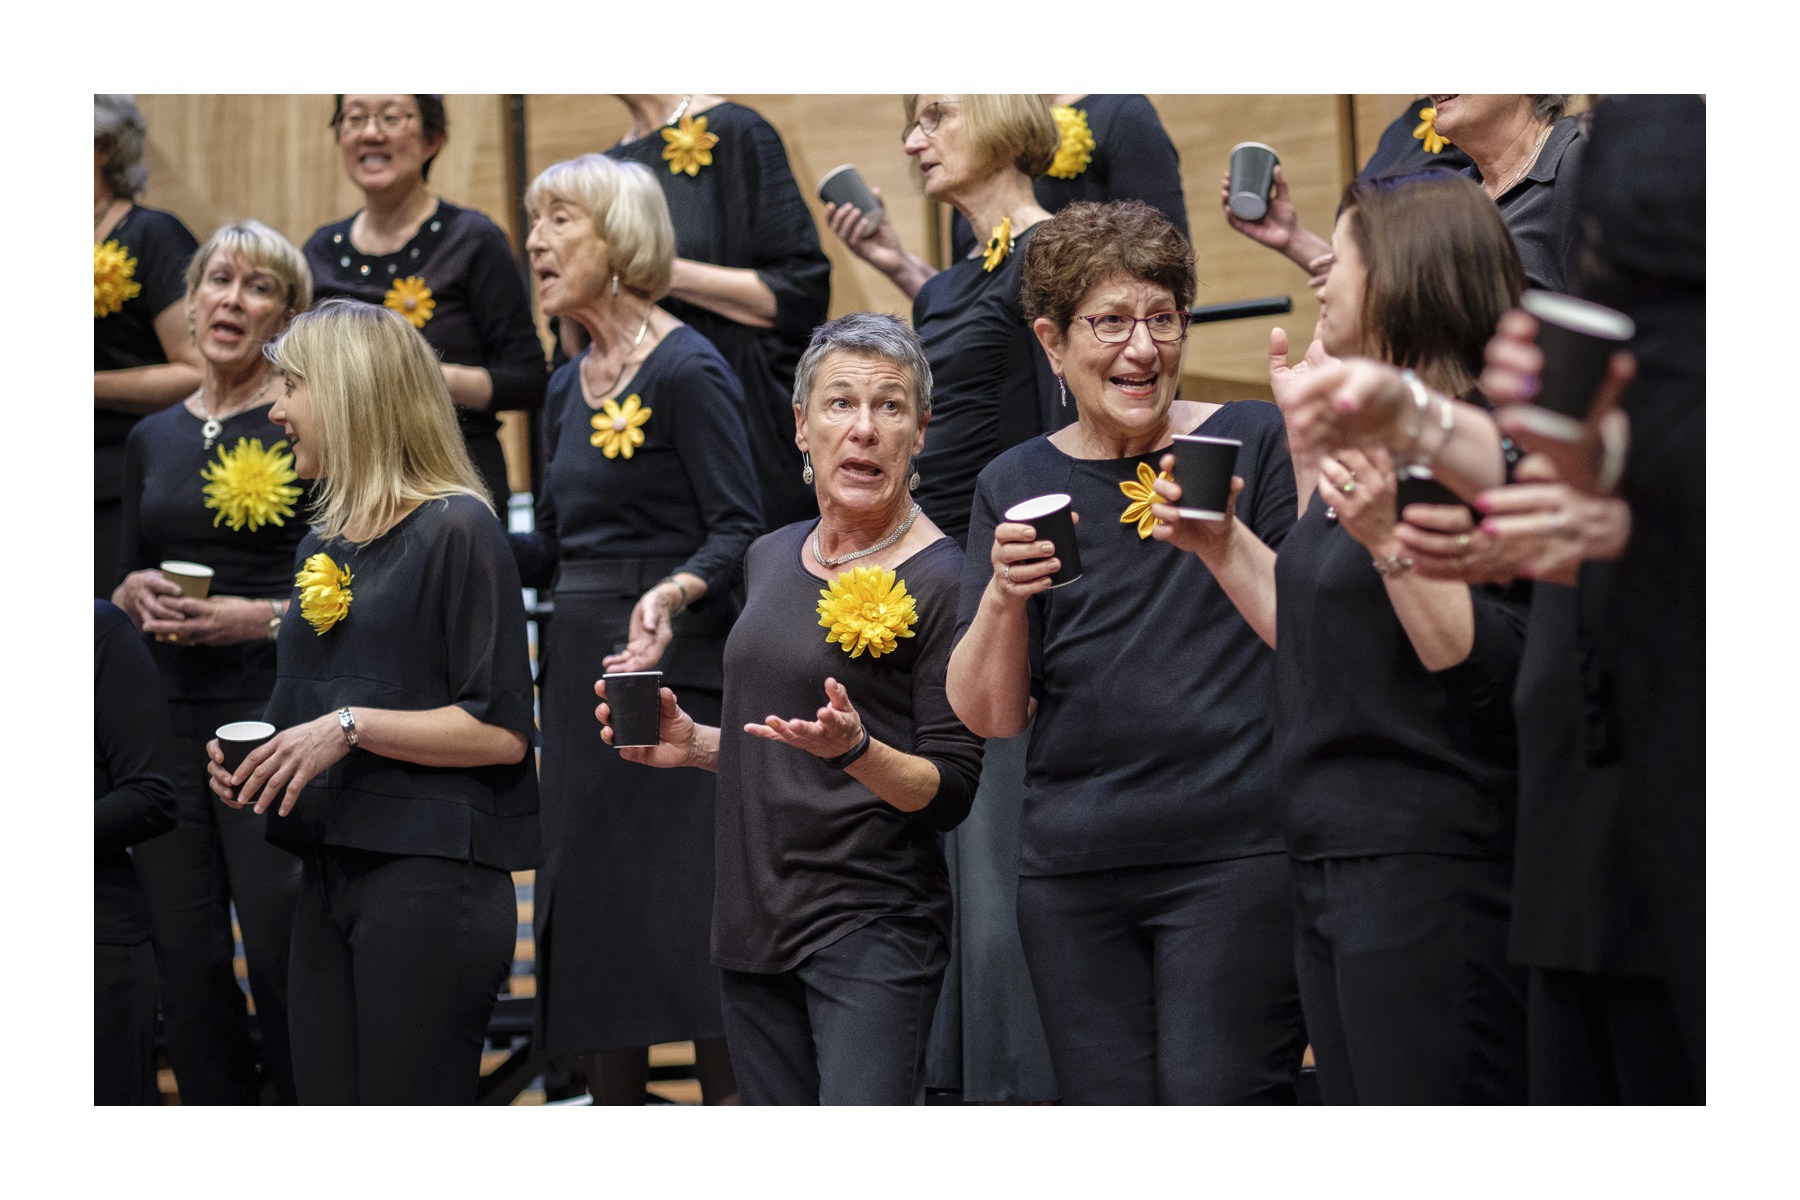 Hummingsong Choirs - Photography by Christopher Hayles_0002.jpg